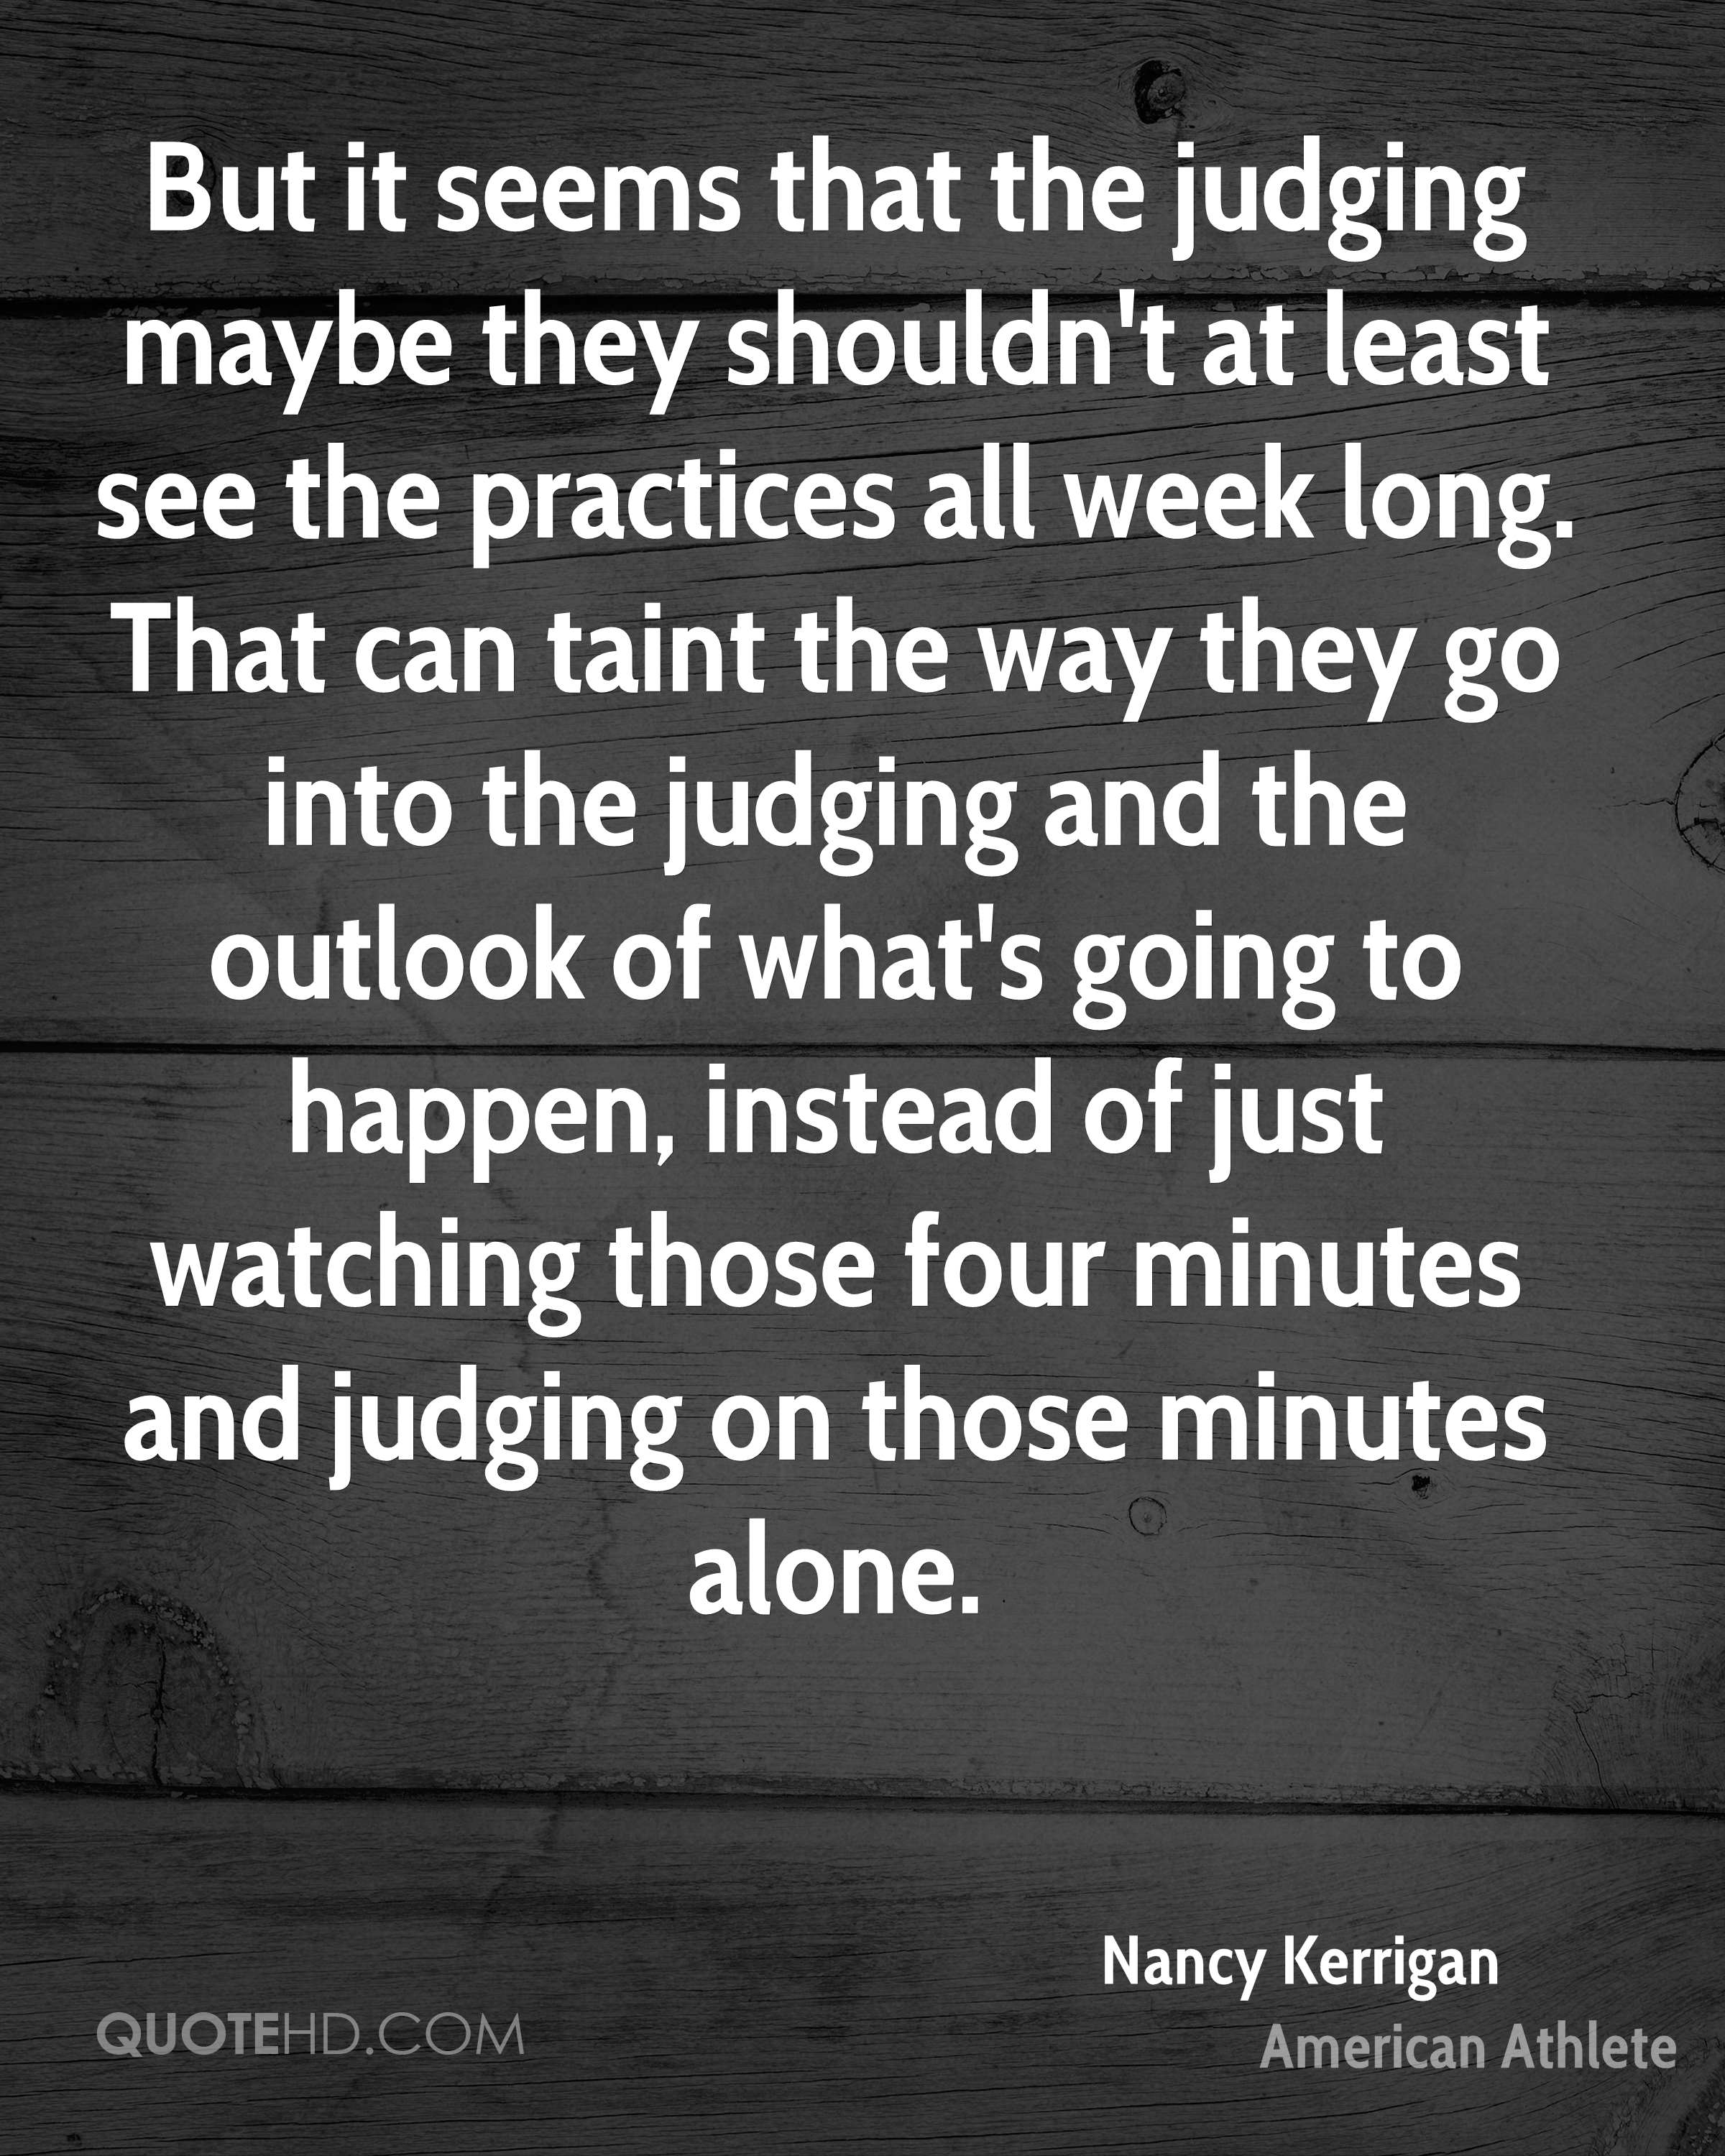 But it seems that the judging maybe they shouldn't at least see the practices all week long. That can taint the way they go into the judging and the outlook of what's going to happen, instead of just watching those four minutes and judging on those minutes alone.